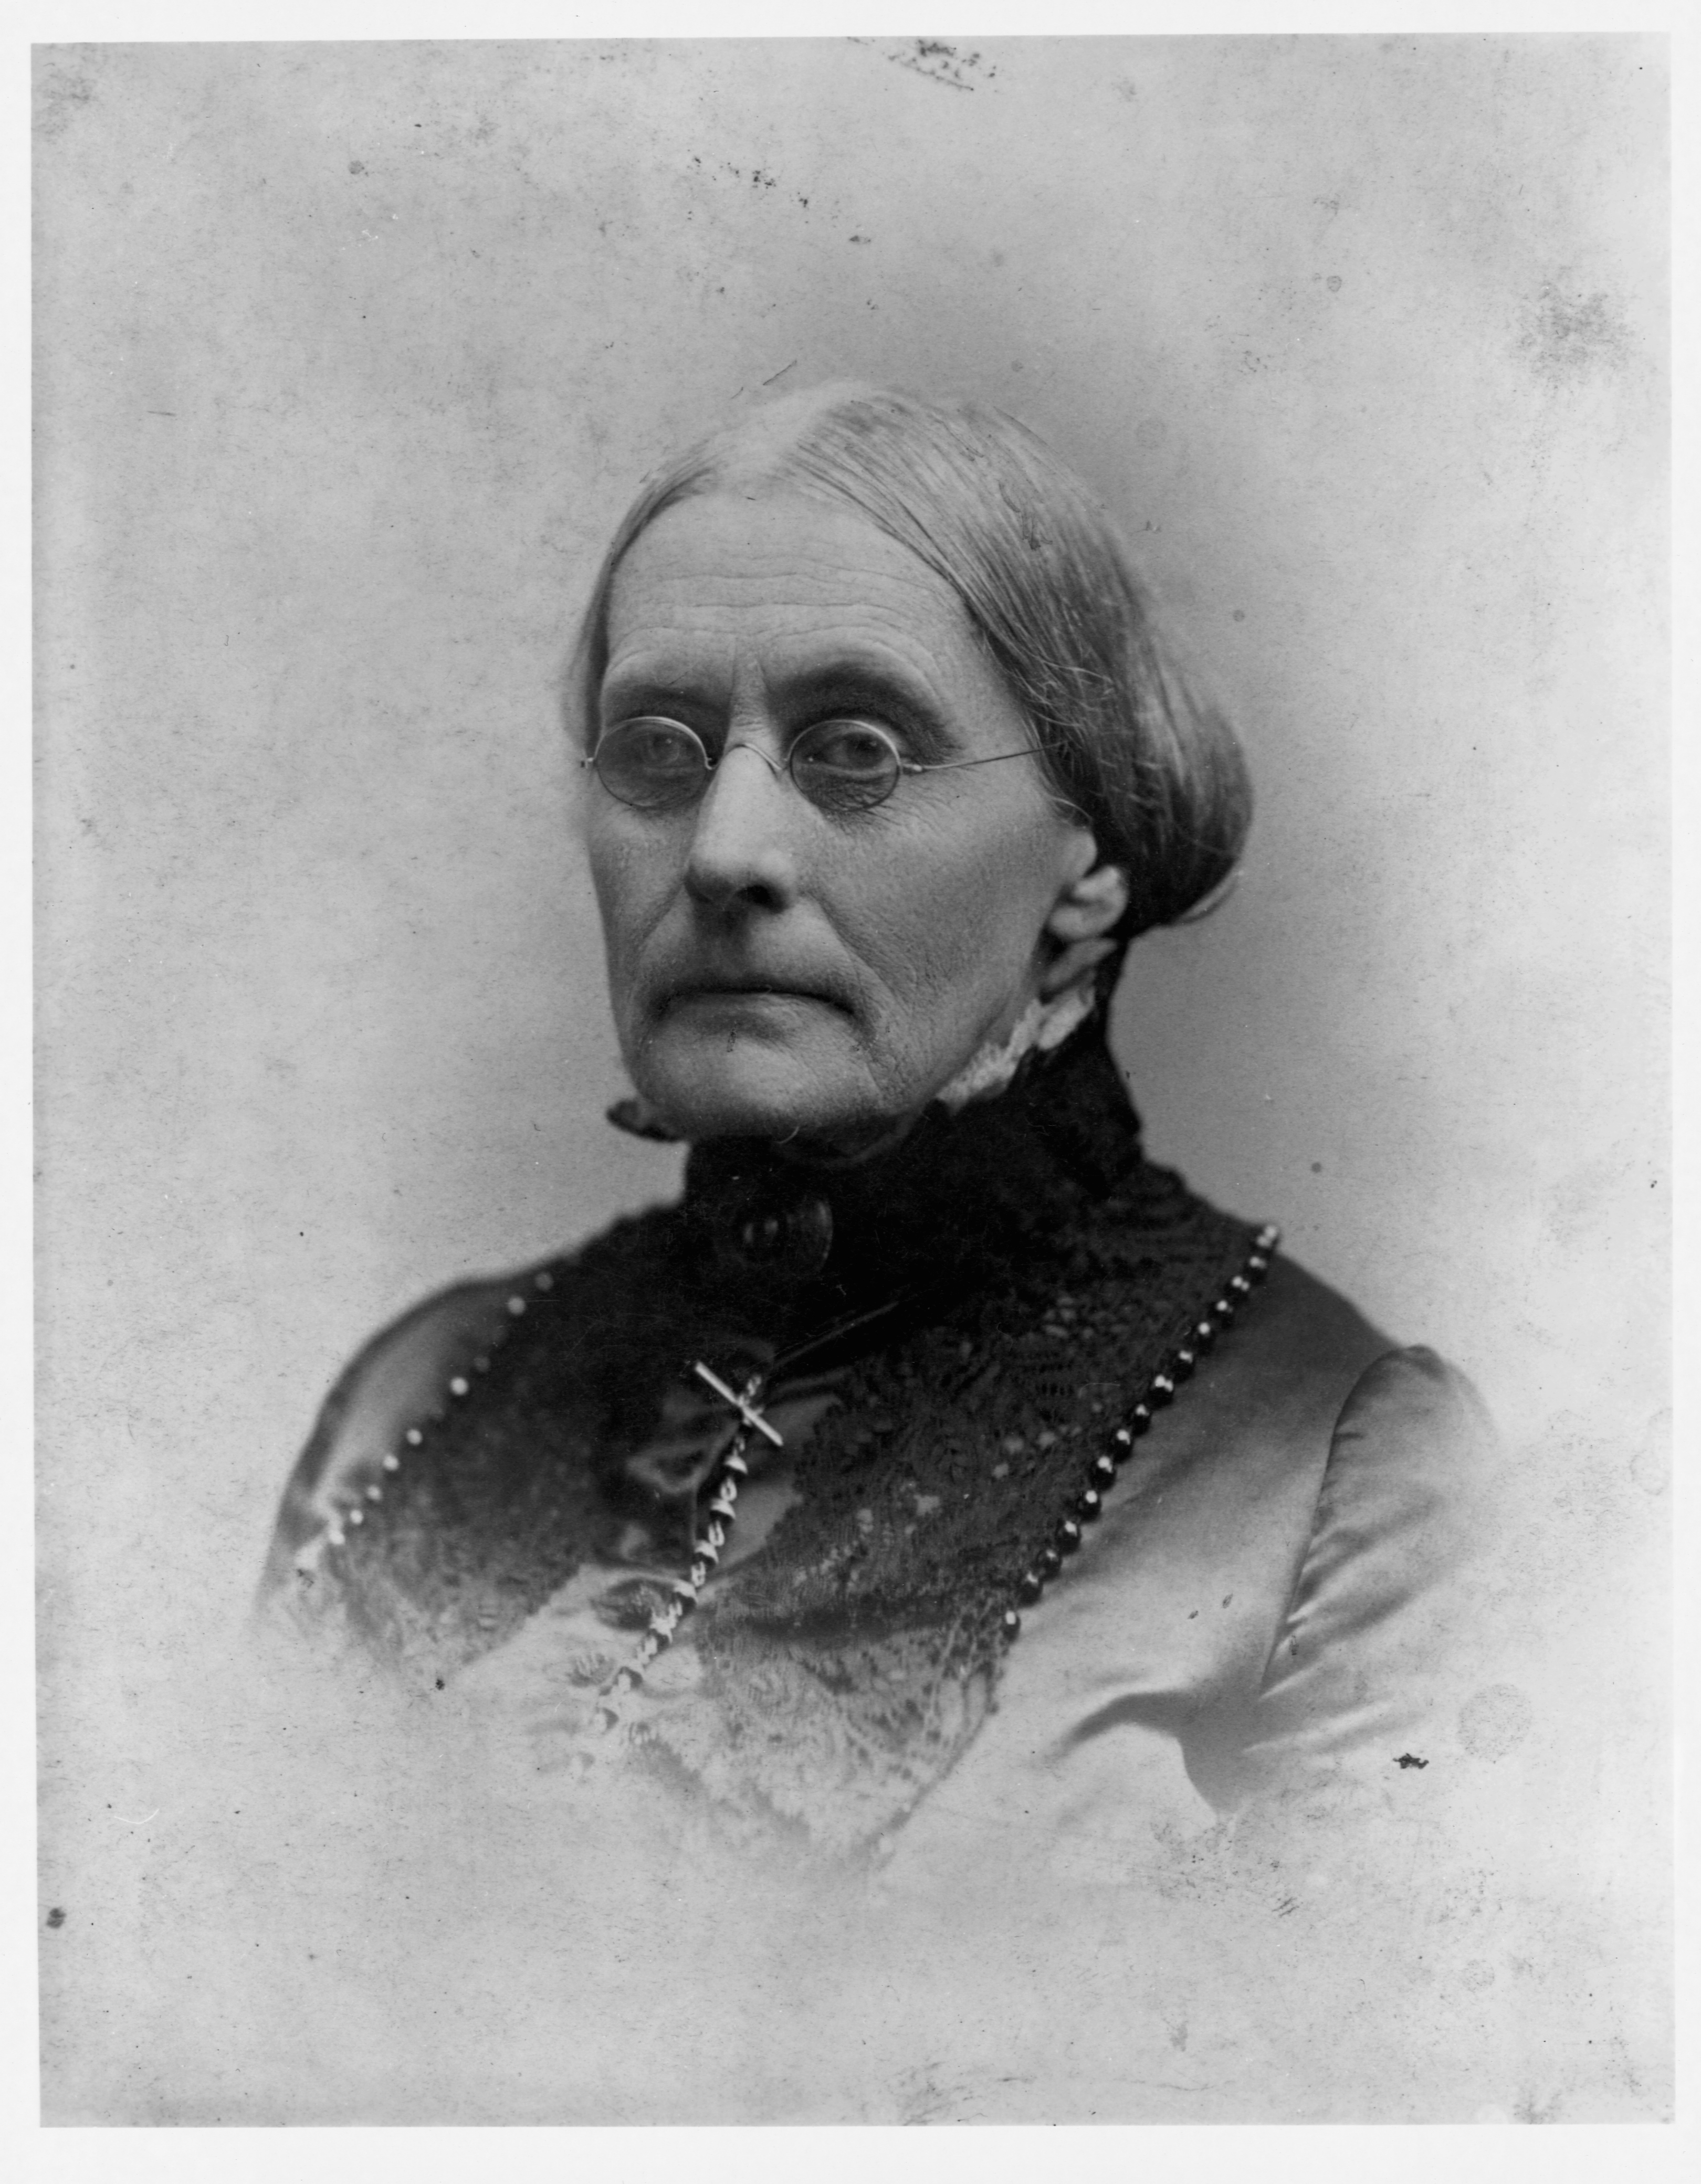 Close-up, black-and-white photograph of Susan B. Anthony